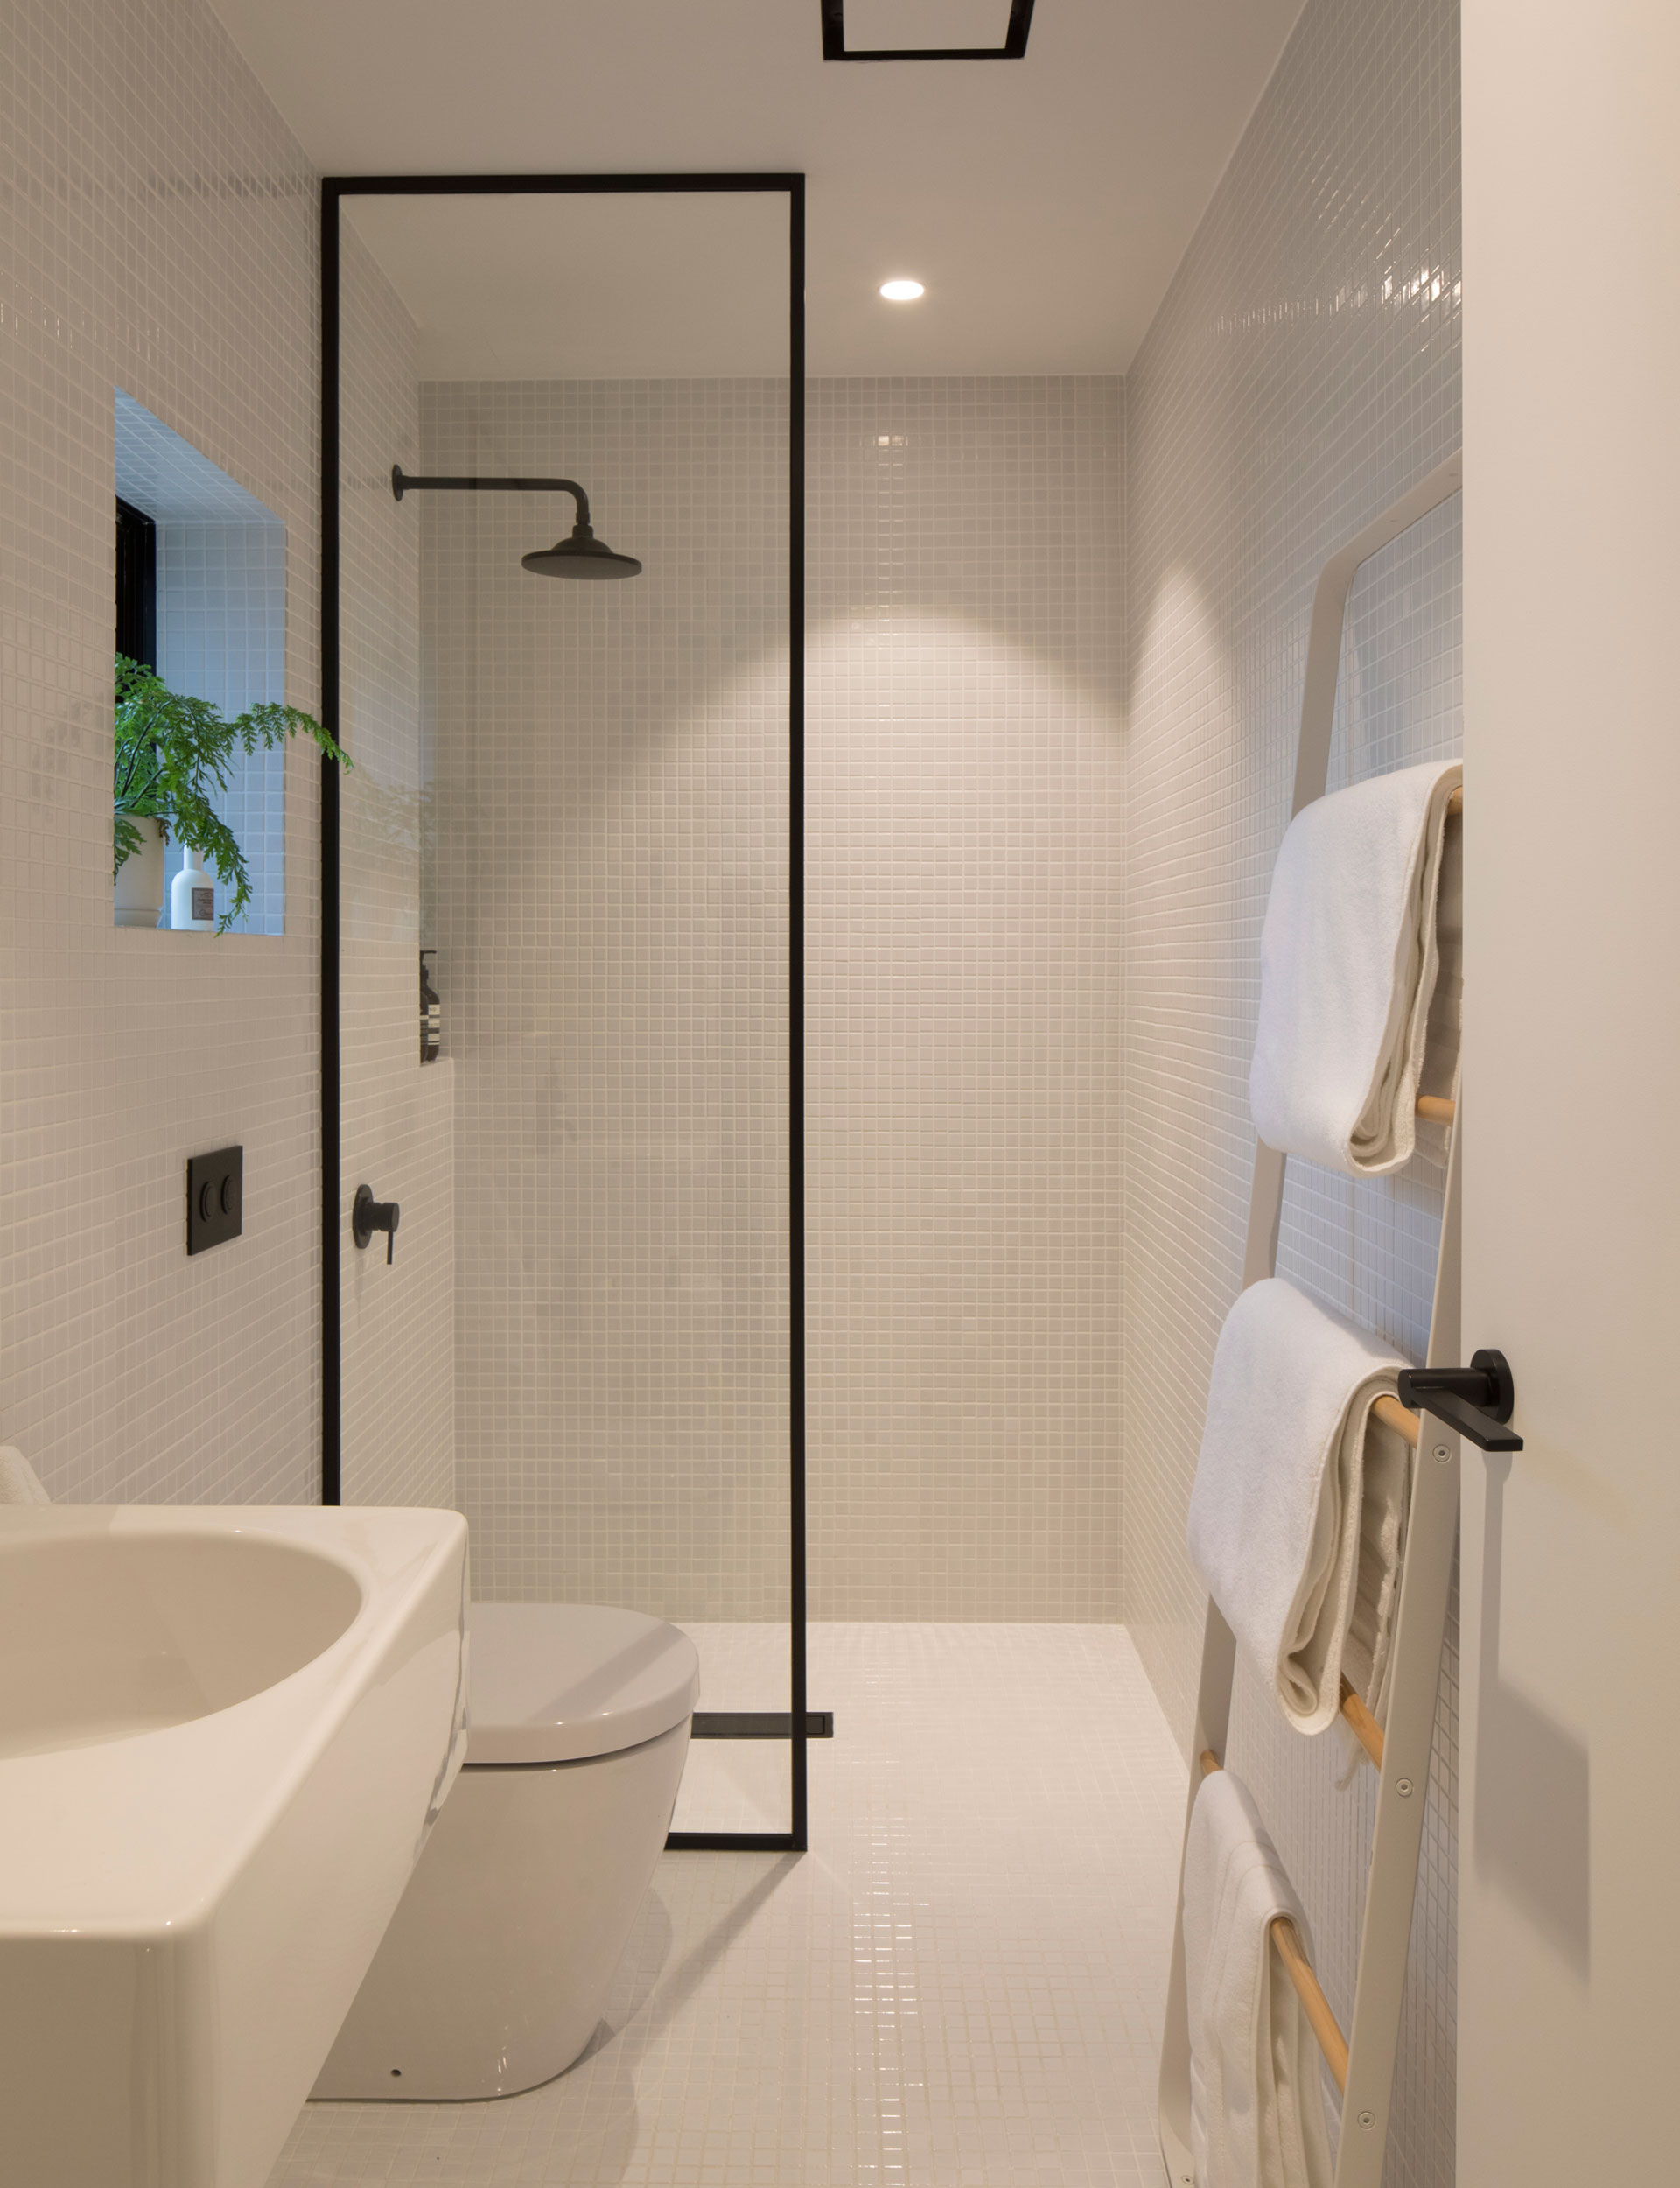 Designer Small Bathrooms How Minimalist Design Took This Small Bathroom To The Next